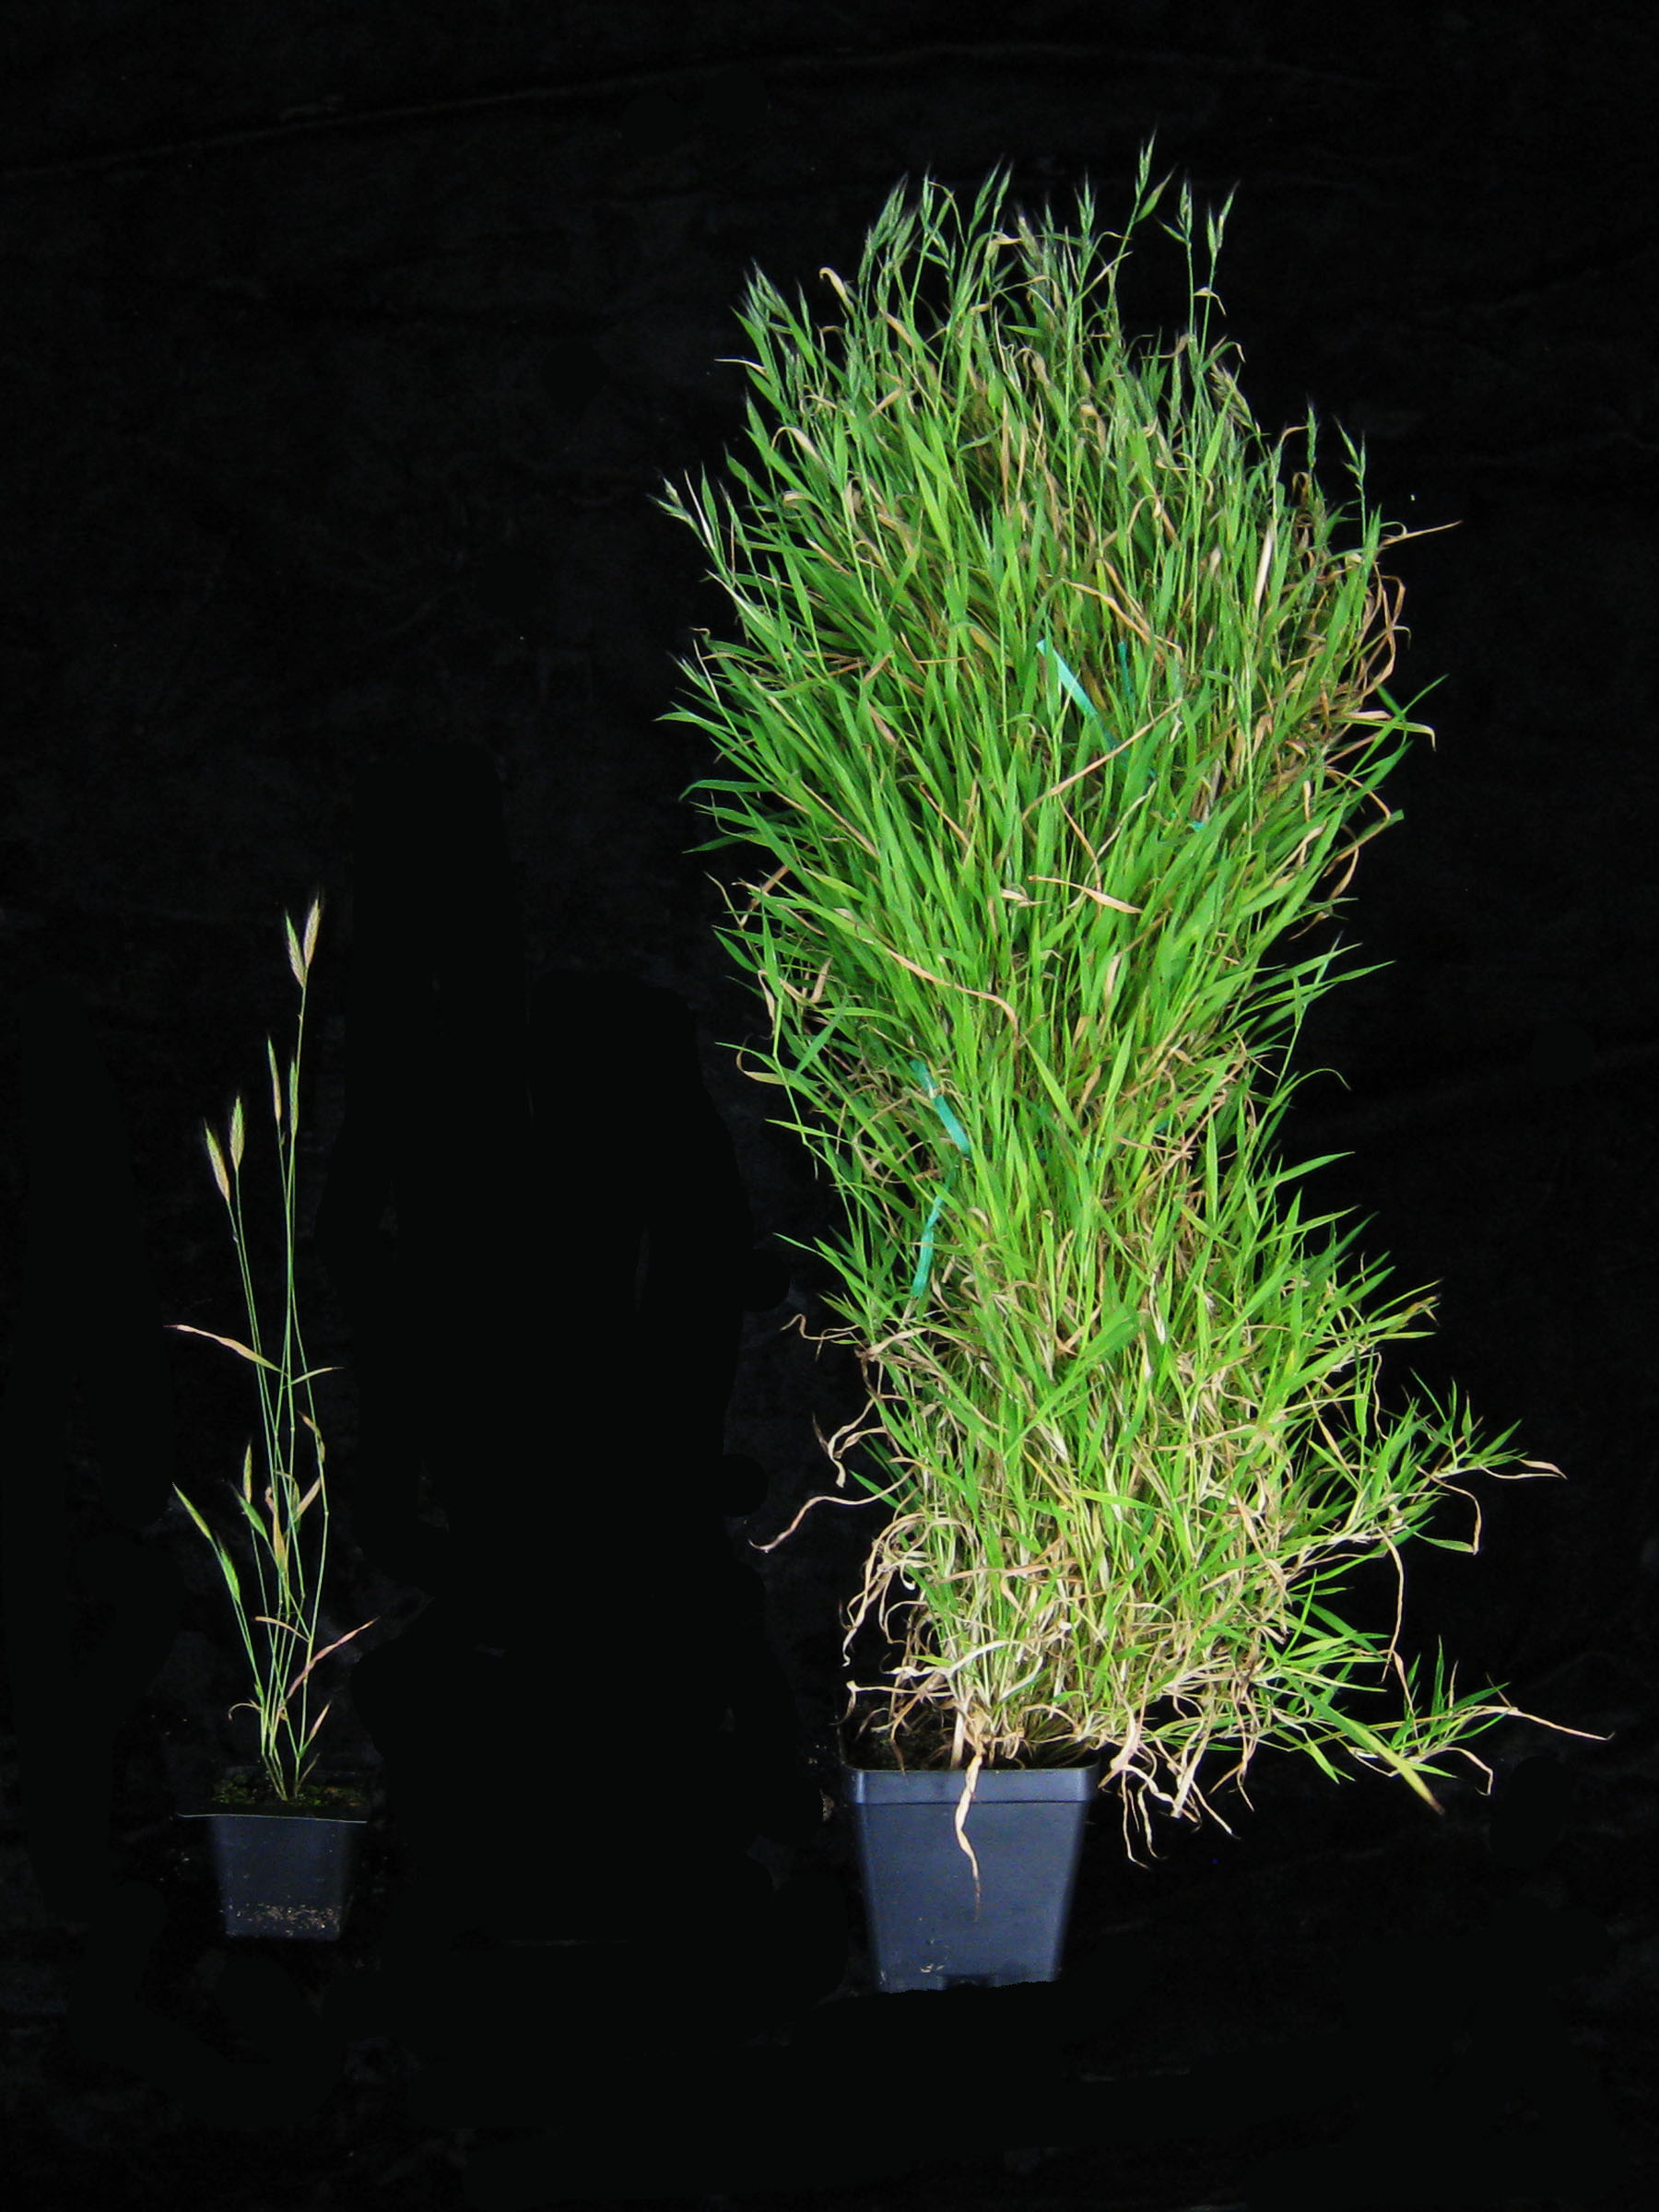 Scientists have identified the gene that keeps grass from entering its flowering cycle until the right time that could also increase yields.